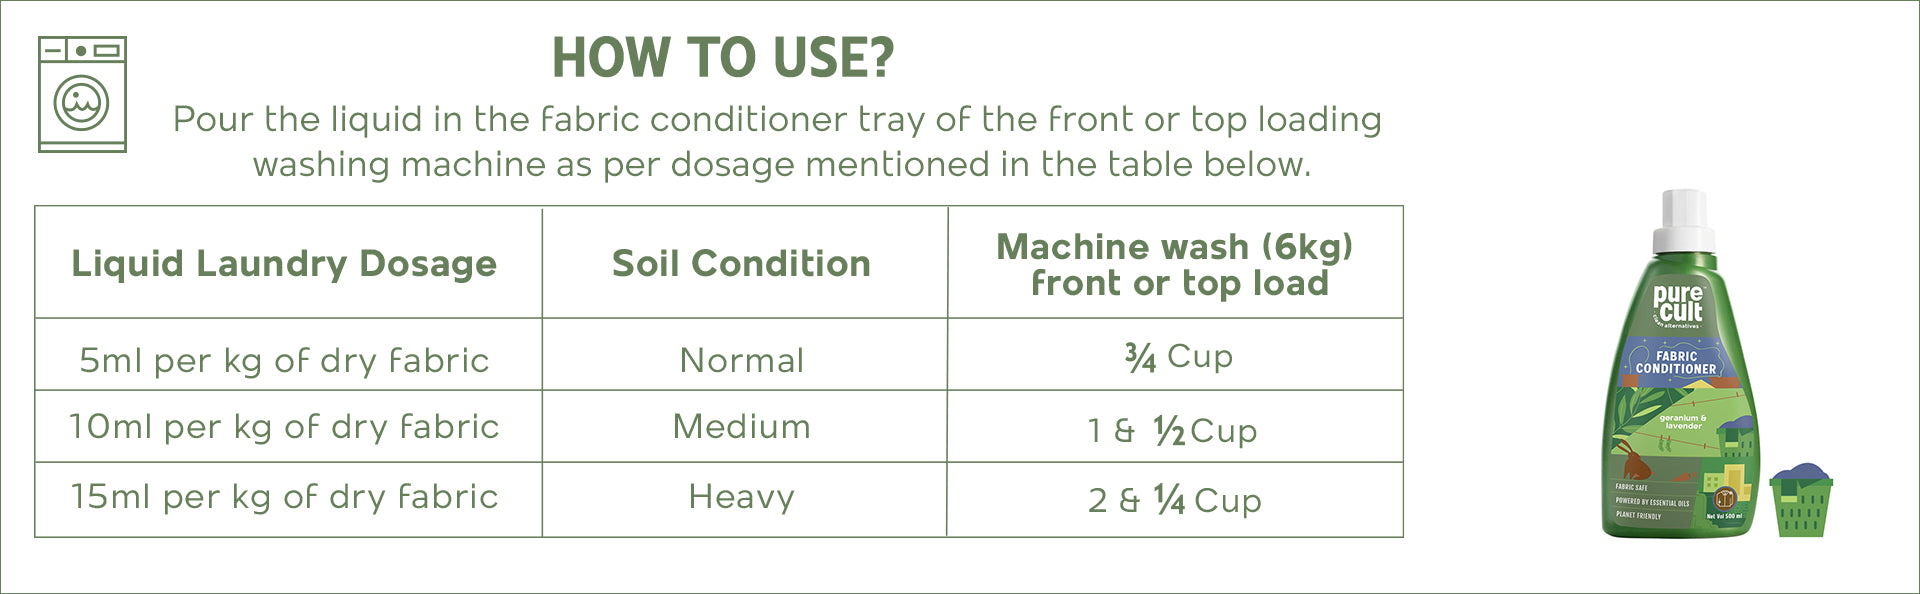 How to use Pure Cult Fabric conditioner